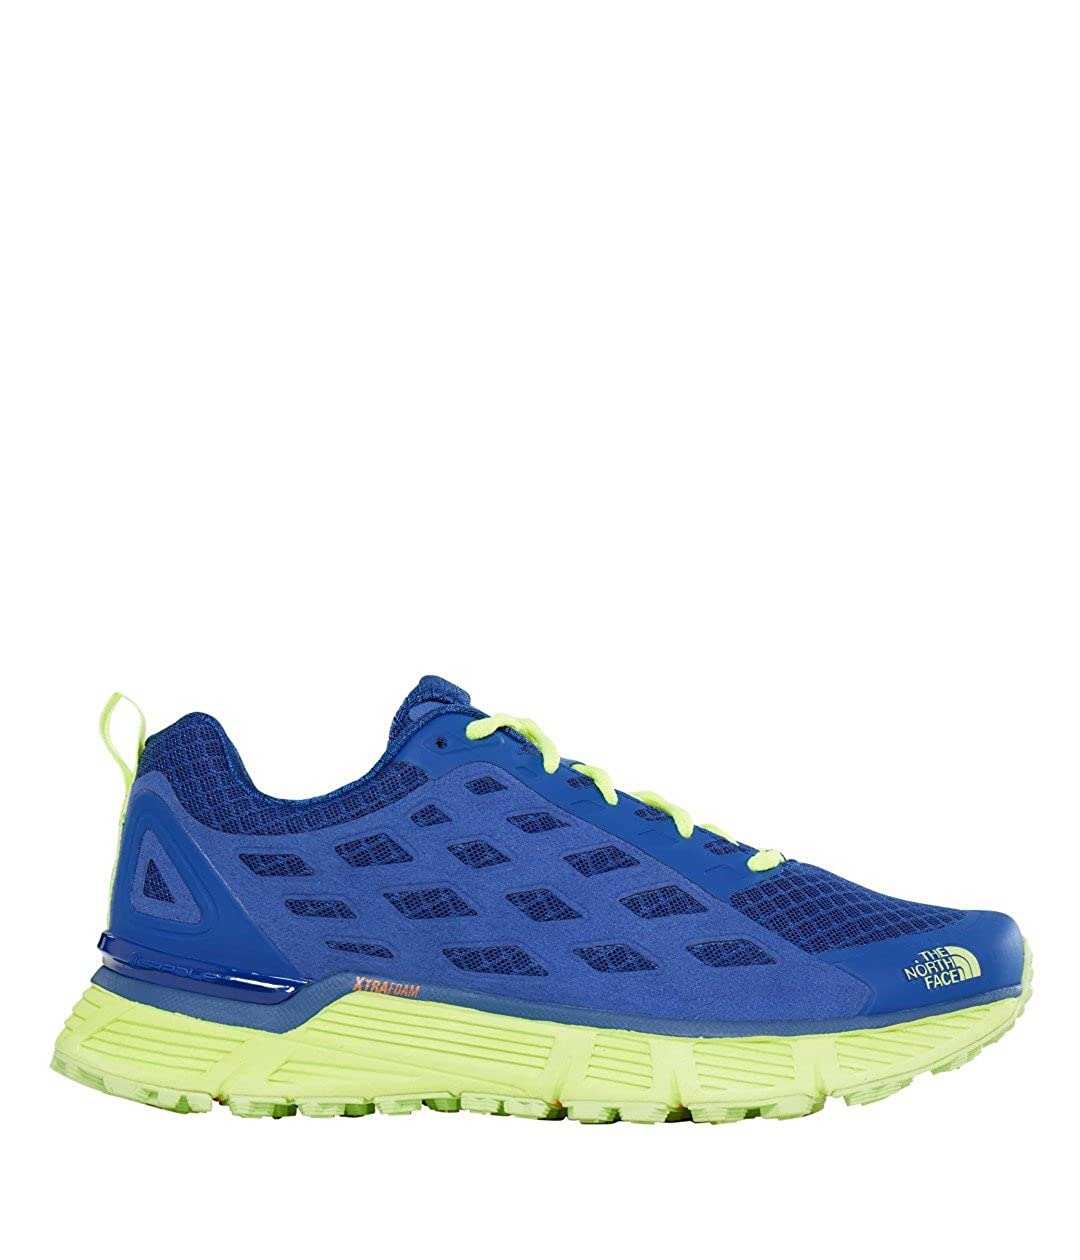 THE NORTH FACE Herren M Endurus Tr Fitnessschuhe